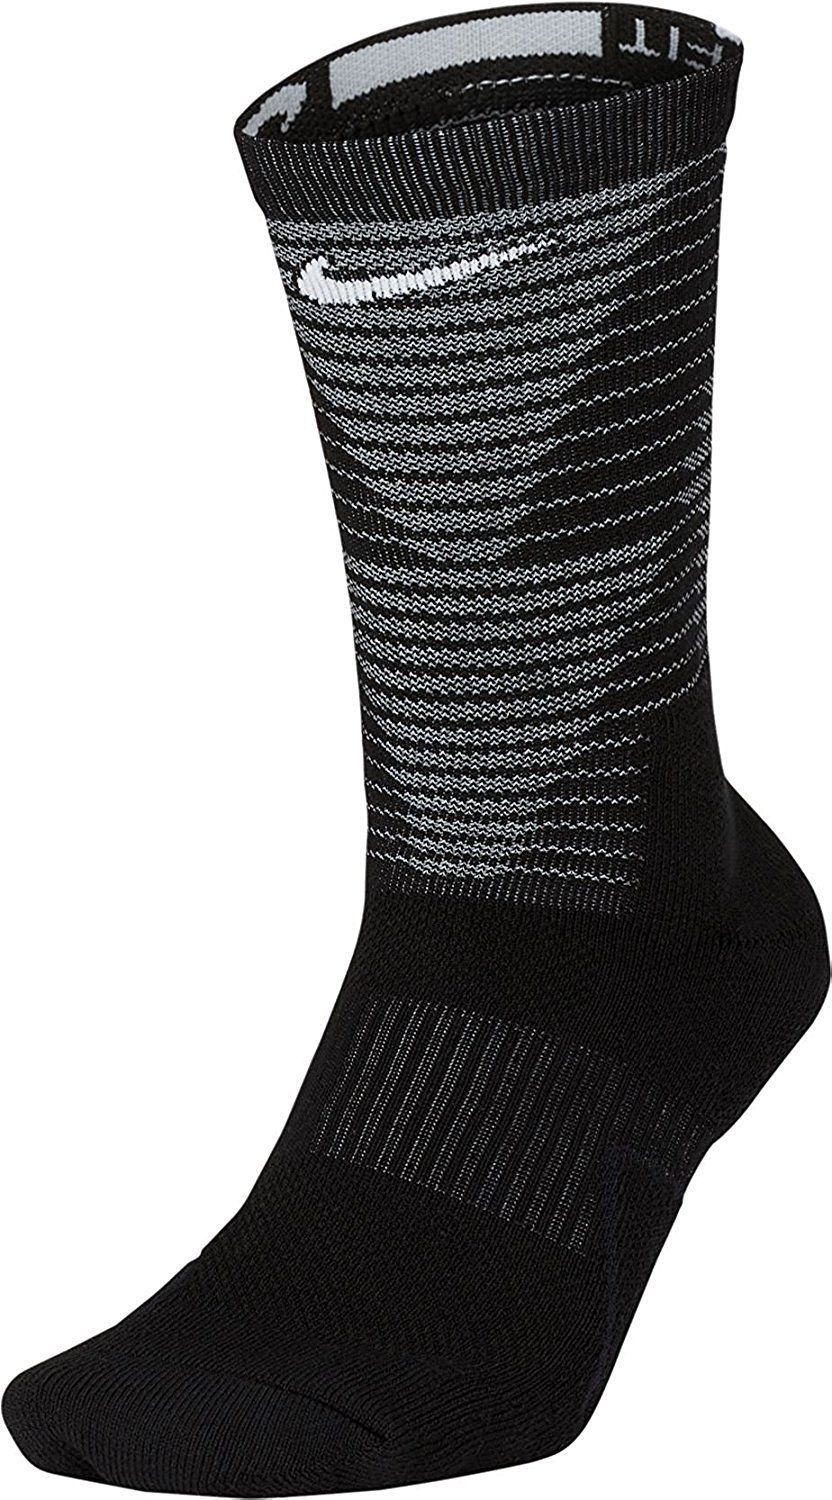 Nike MEN'S  Dri-Fit Elite Disrupter 1.5 Cushioned Crew Socks-Black  NWT